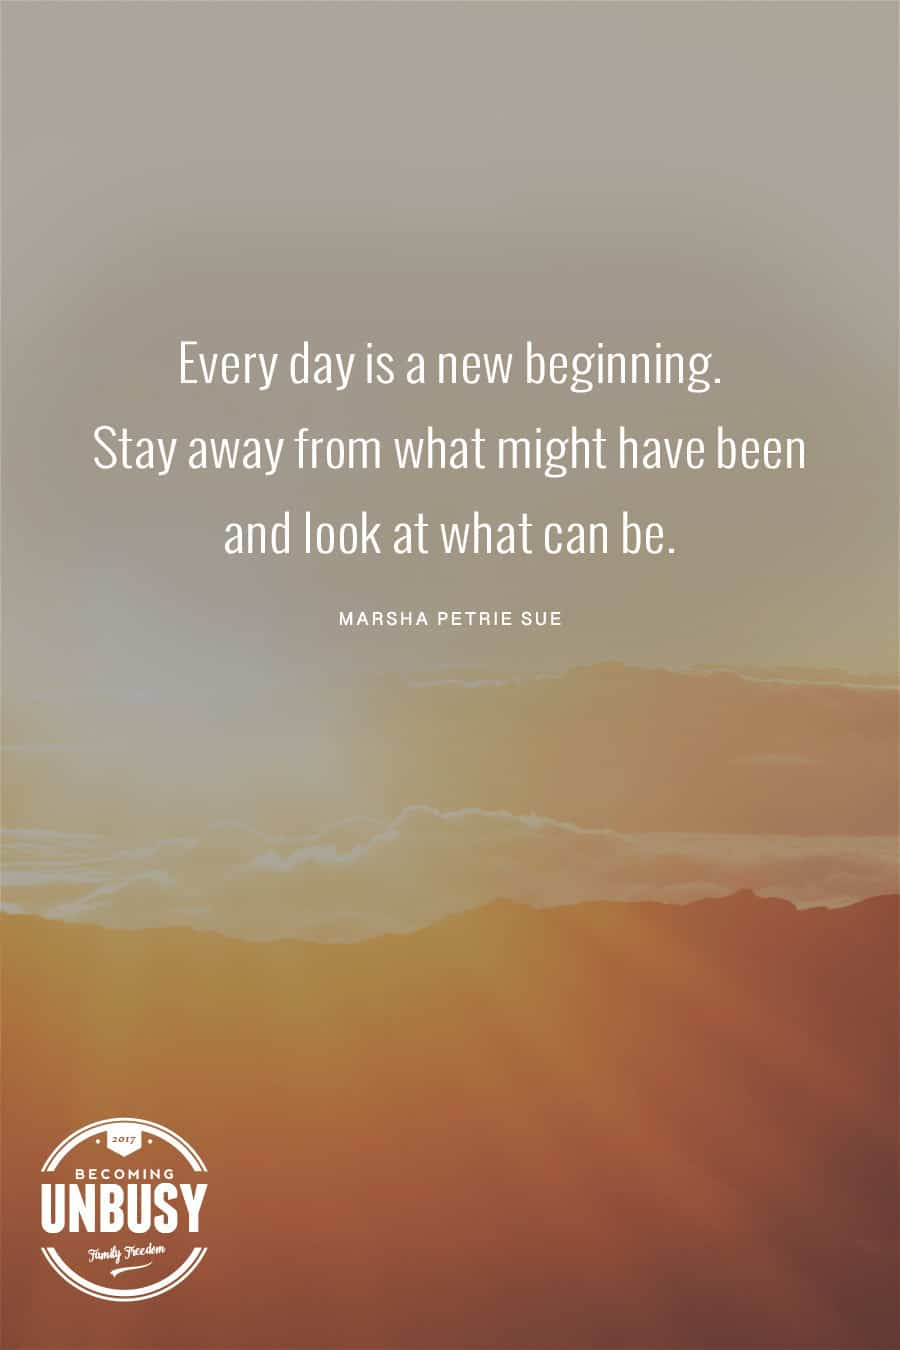 """Sunrise with the quote, """"Every day is a new beginning. Stay away from what might have been and look at what can be."""""""